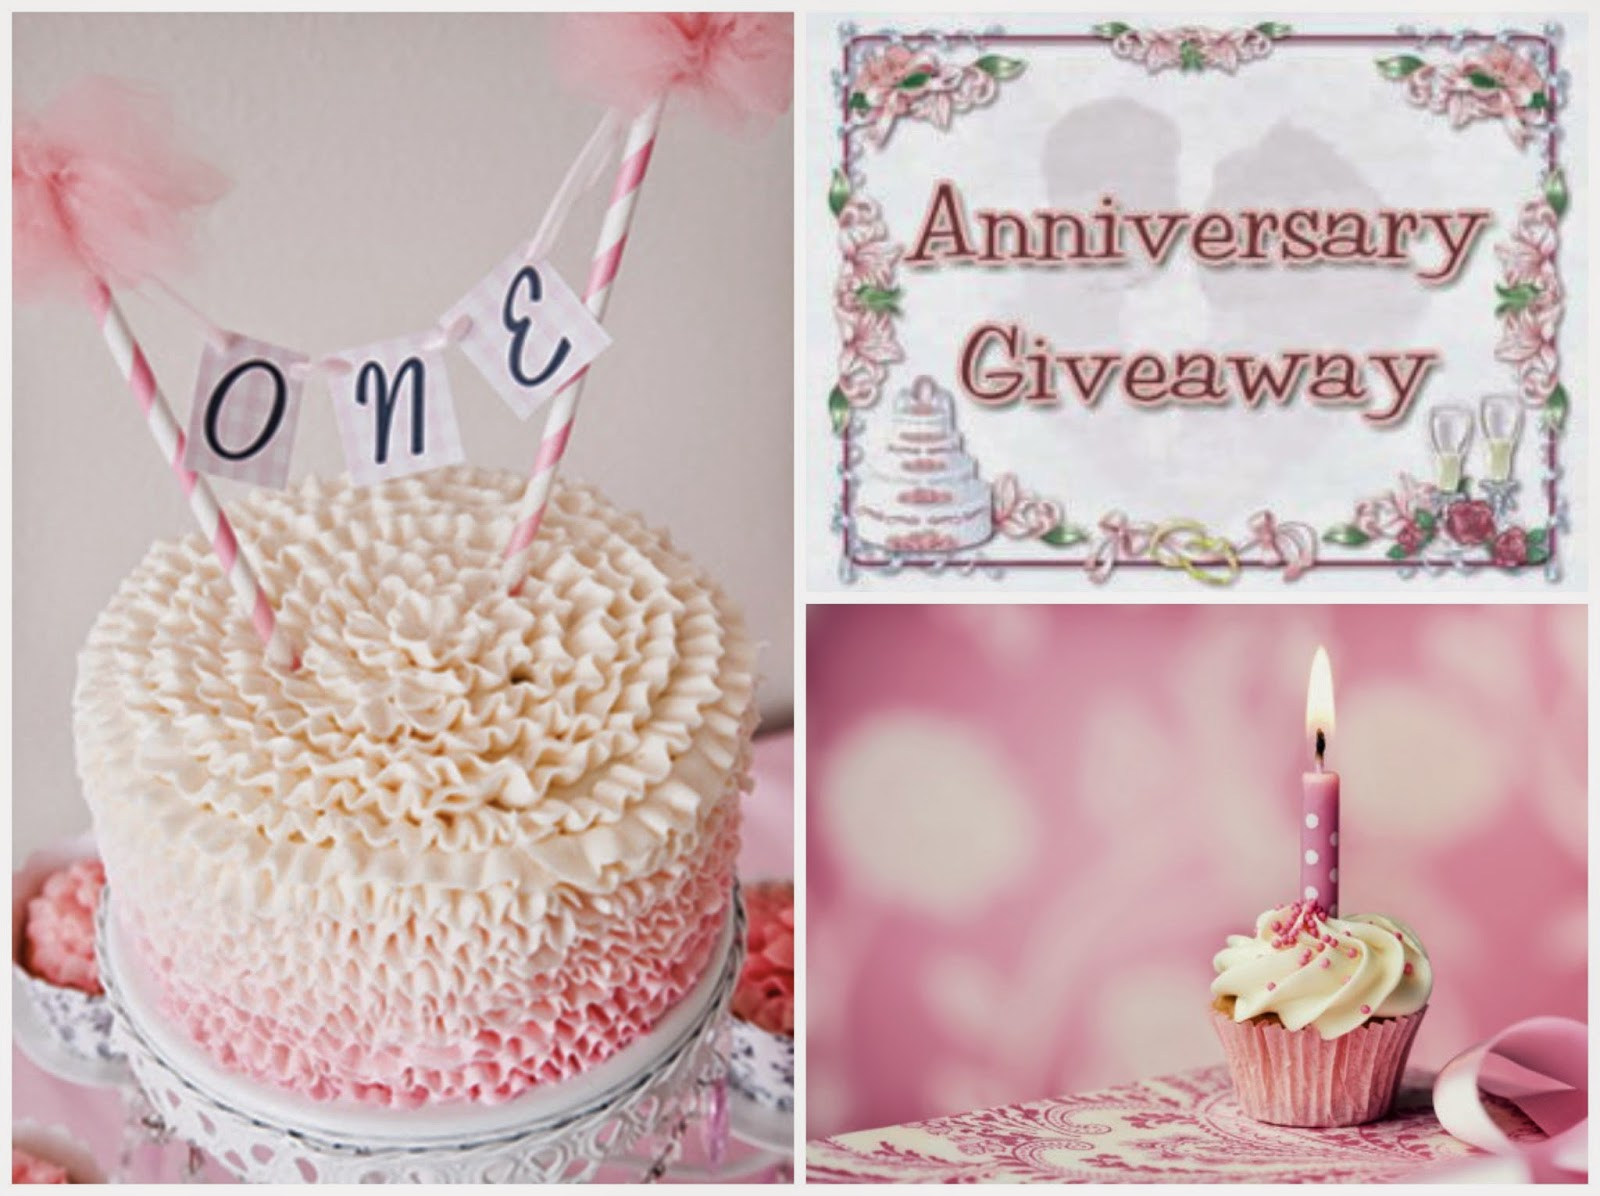 10000 Reasons Of Joy : Grand Anniversary Giveaway image